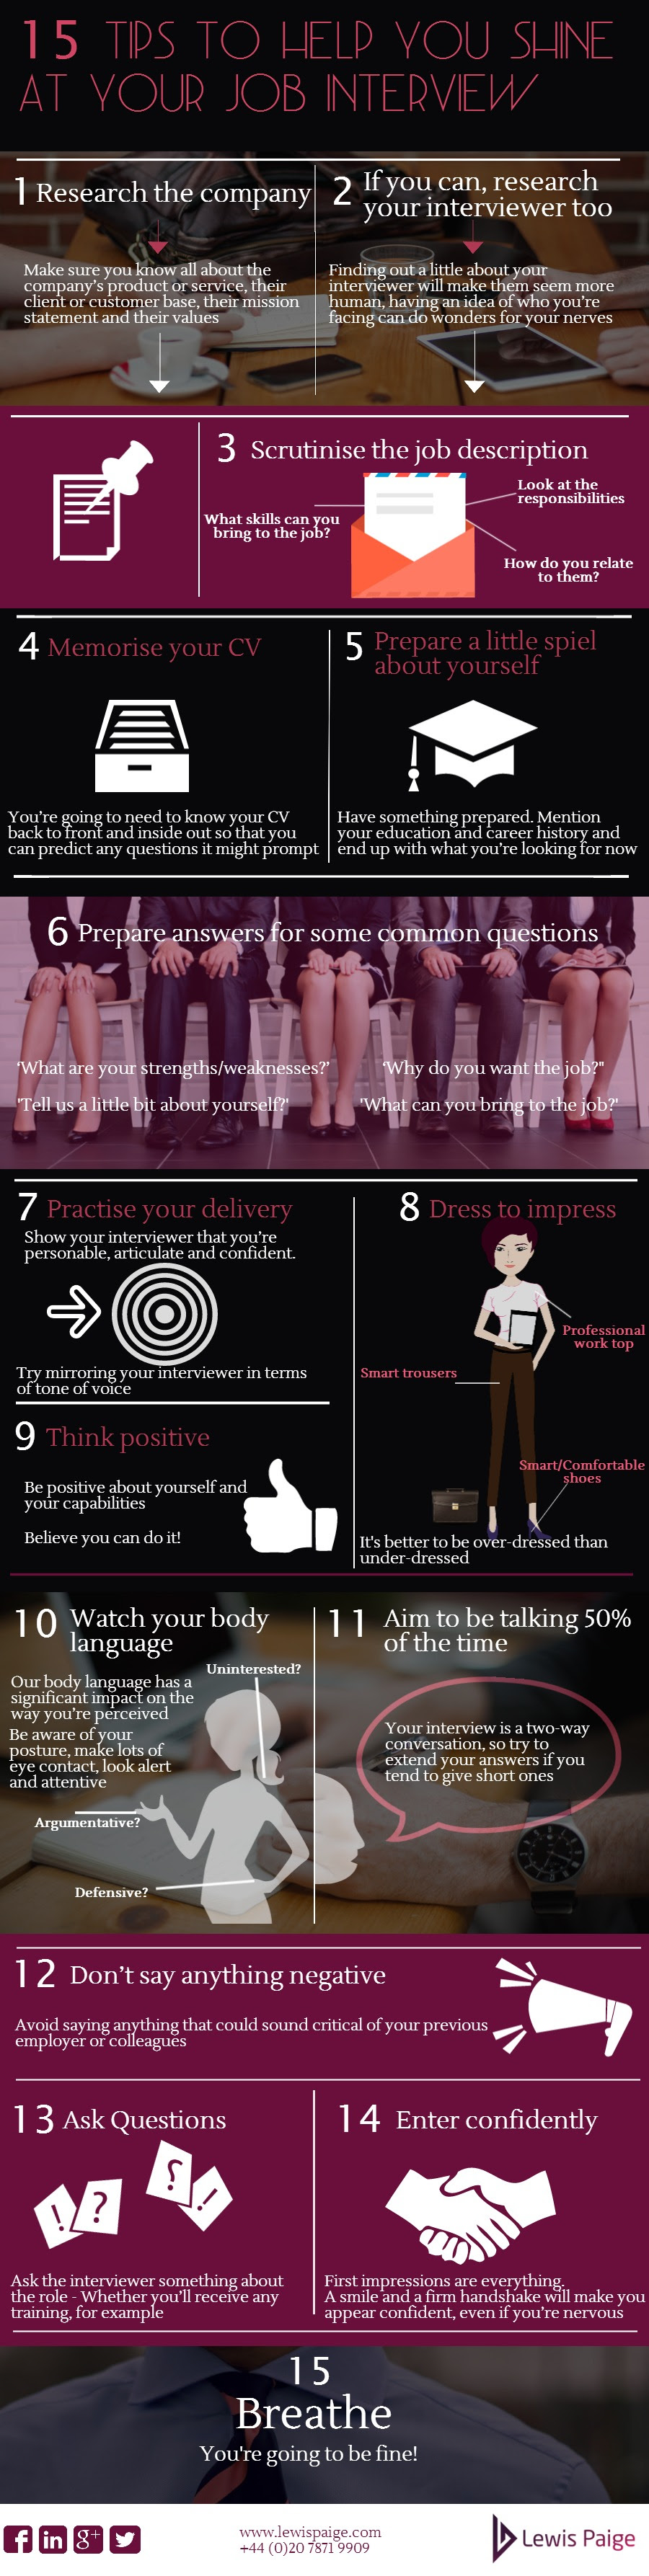 Infographic: 15 Tips to Help You Shine At Your Job Interview